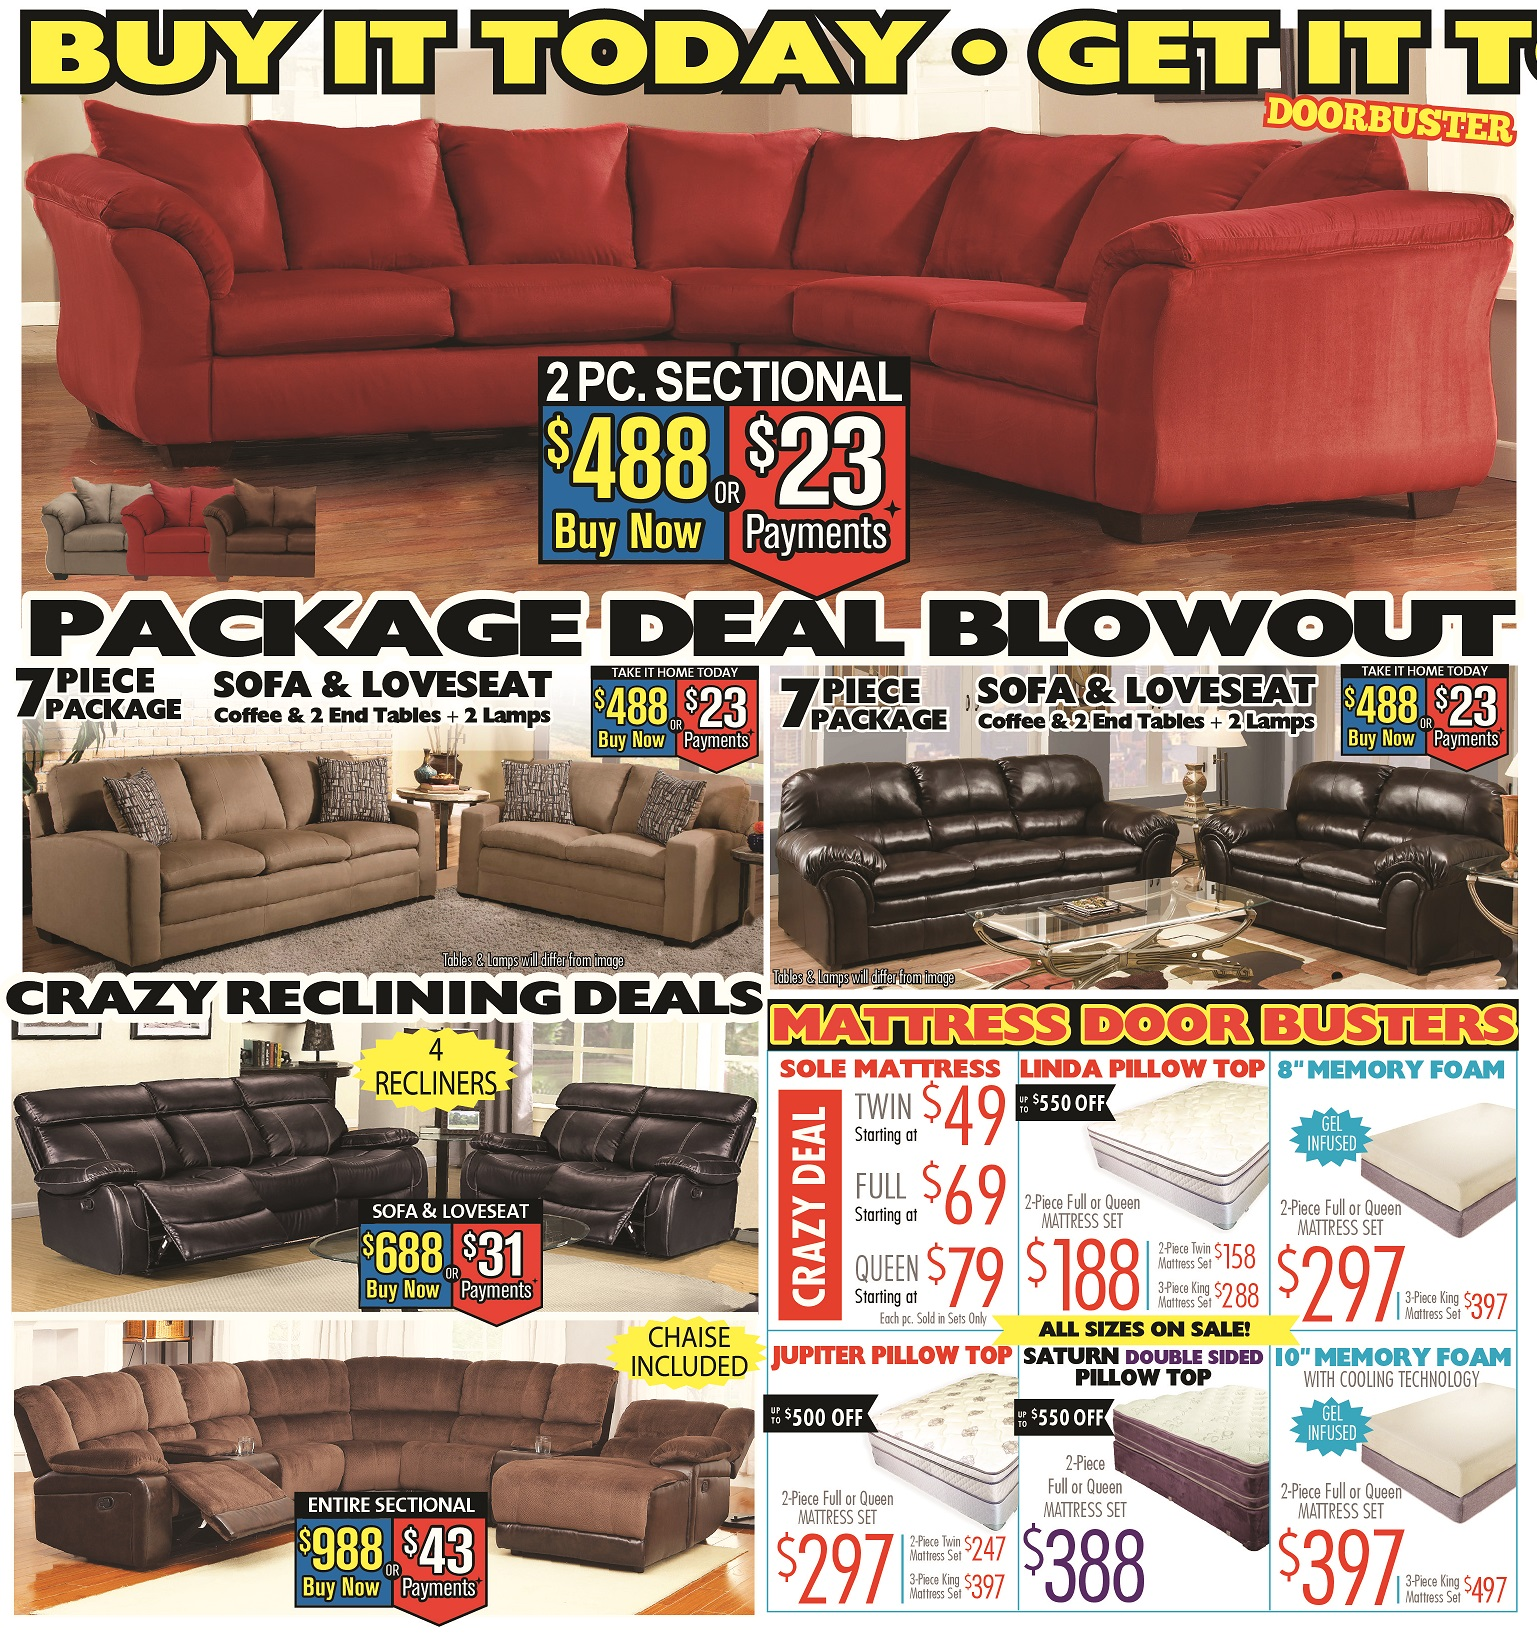 Price Busters Discount Furniture Forestville Maryland MD